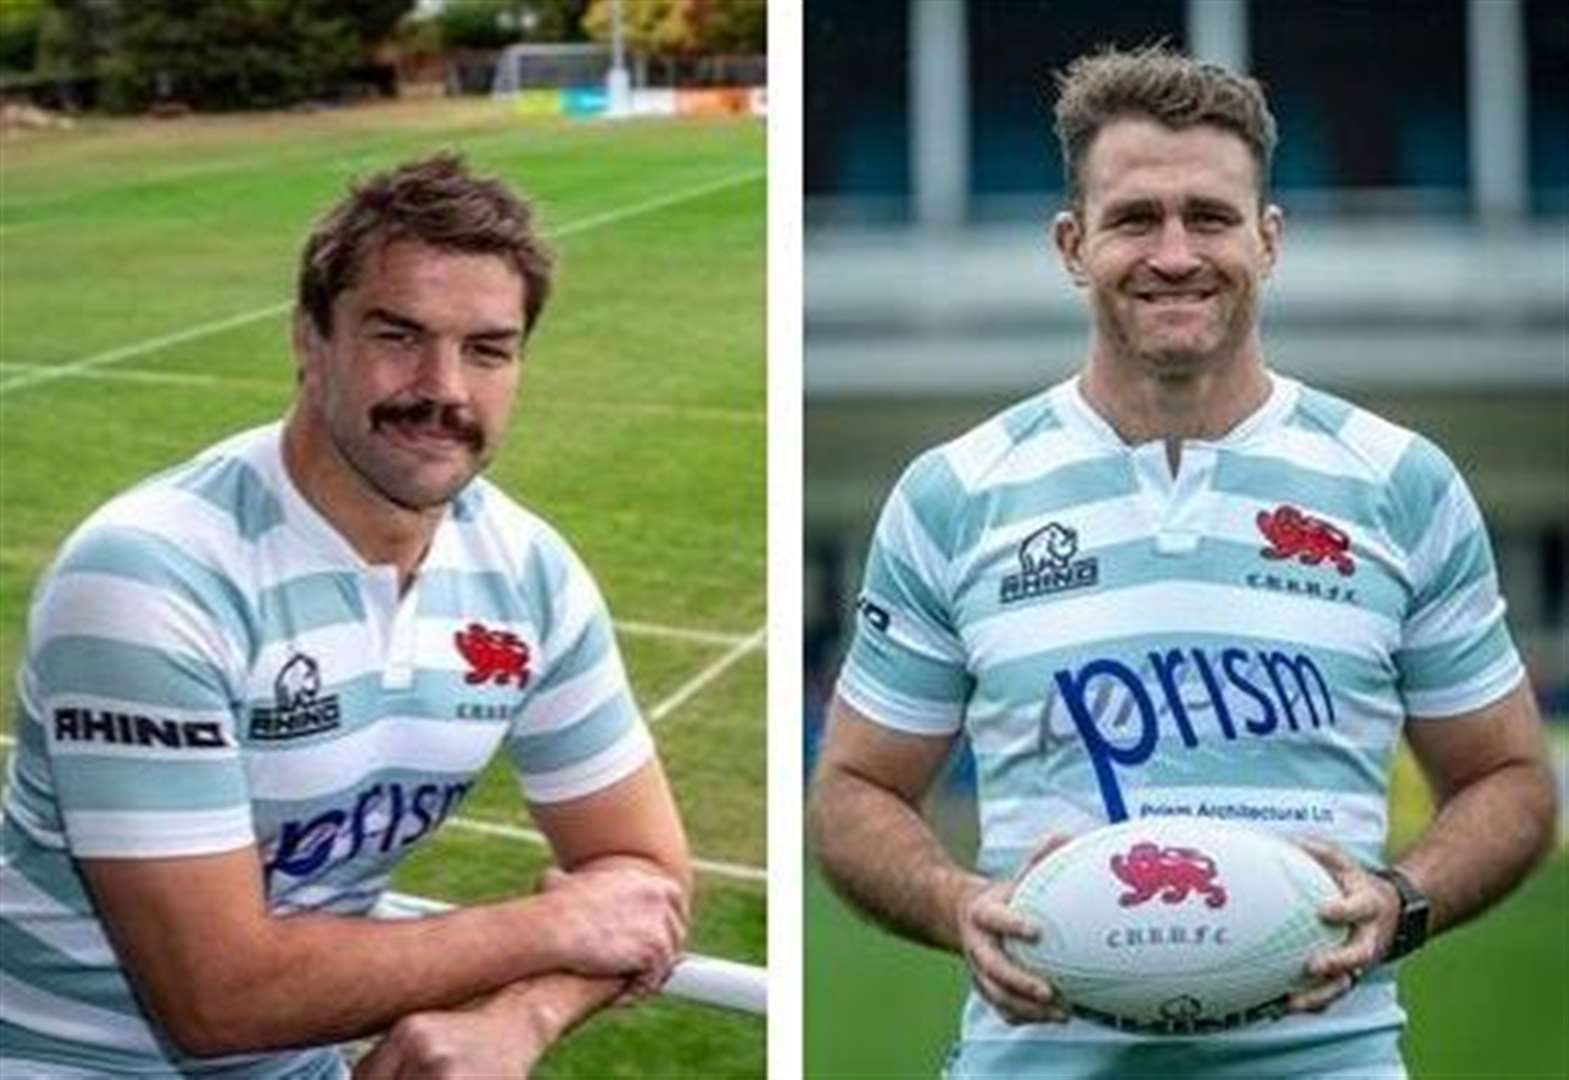 Former internationals Flip van der Merwe and James Horwill to make Cambridge University RUFC debuts against Cambridge Rugby Club